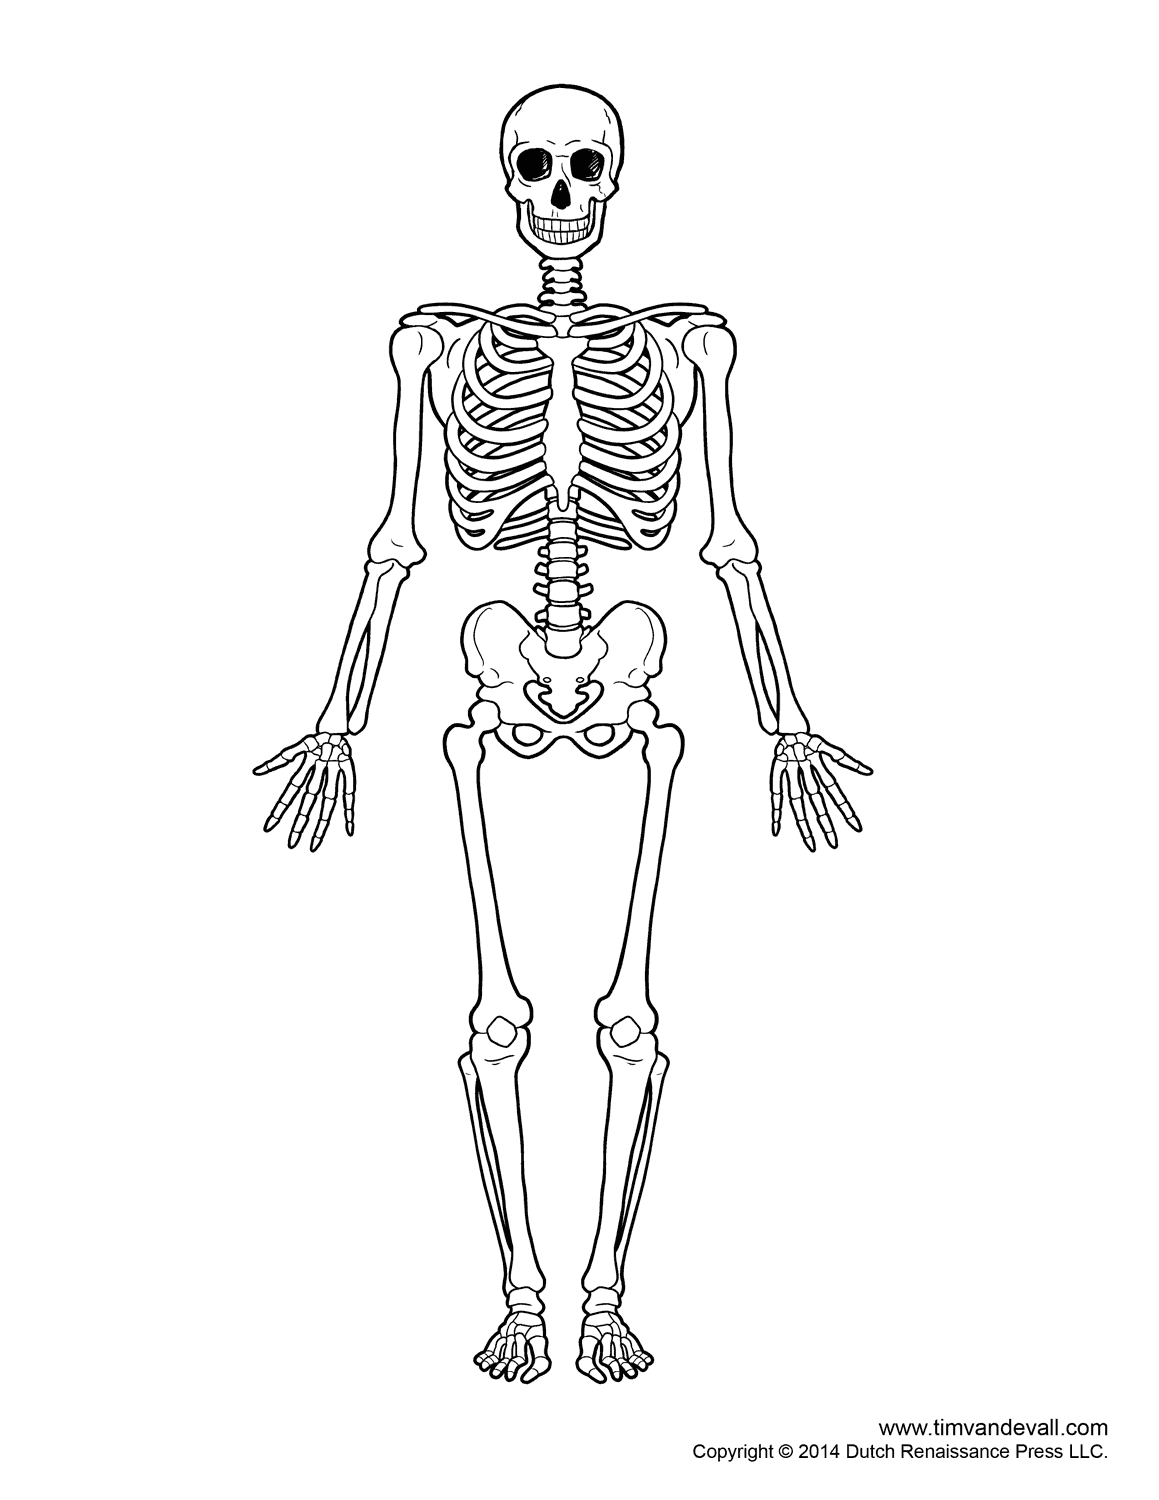 Diagram Of Human Skeleton Coloringpages Patterns In 2019